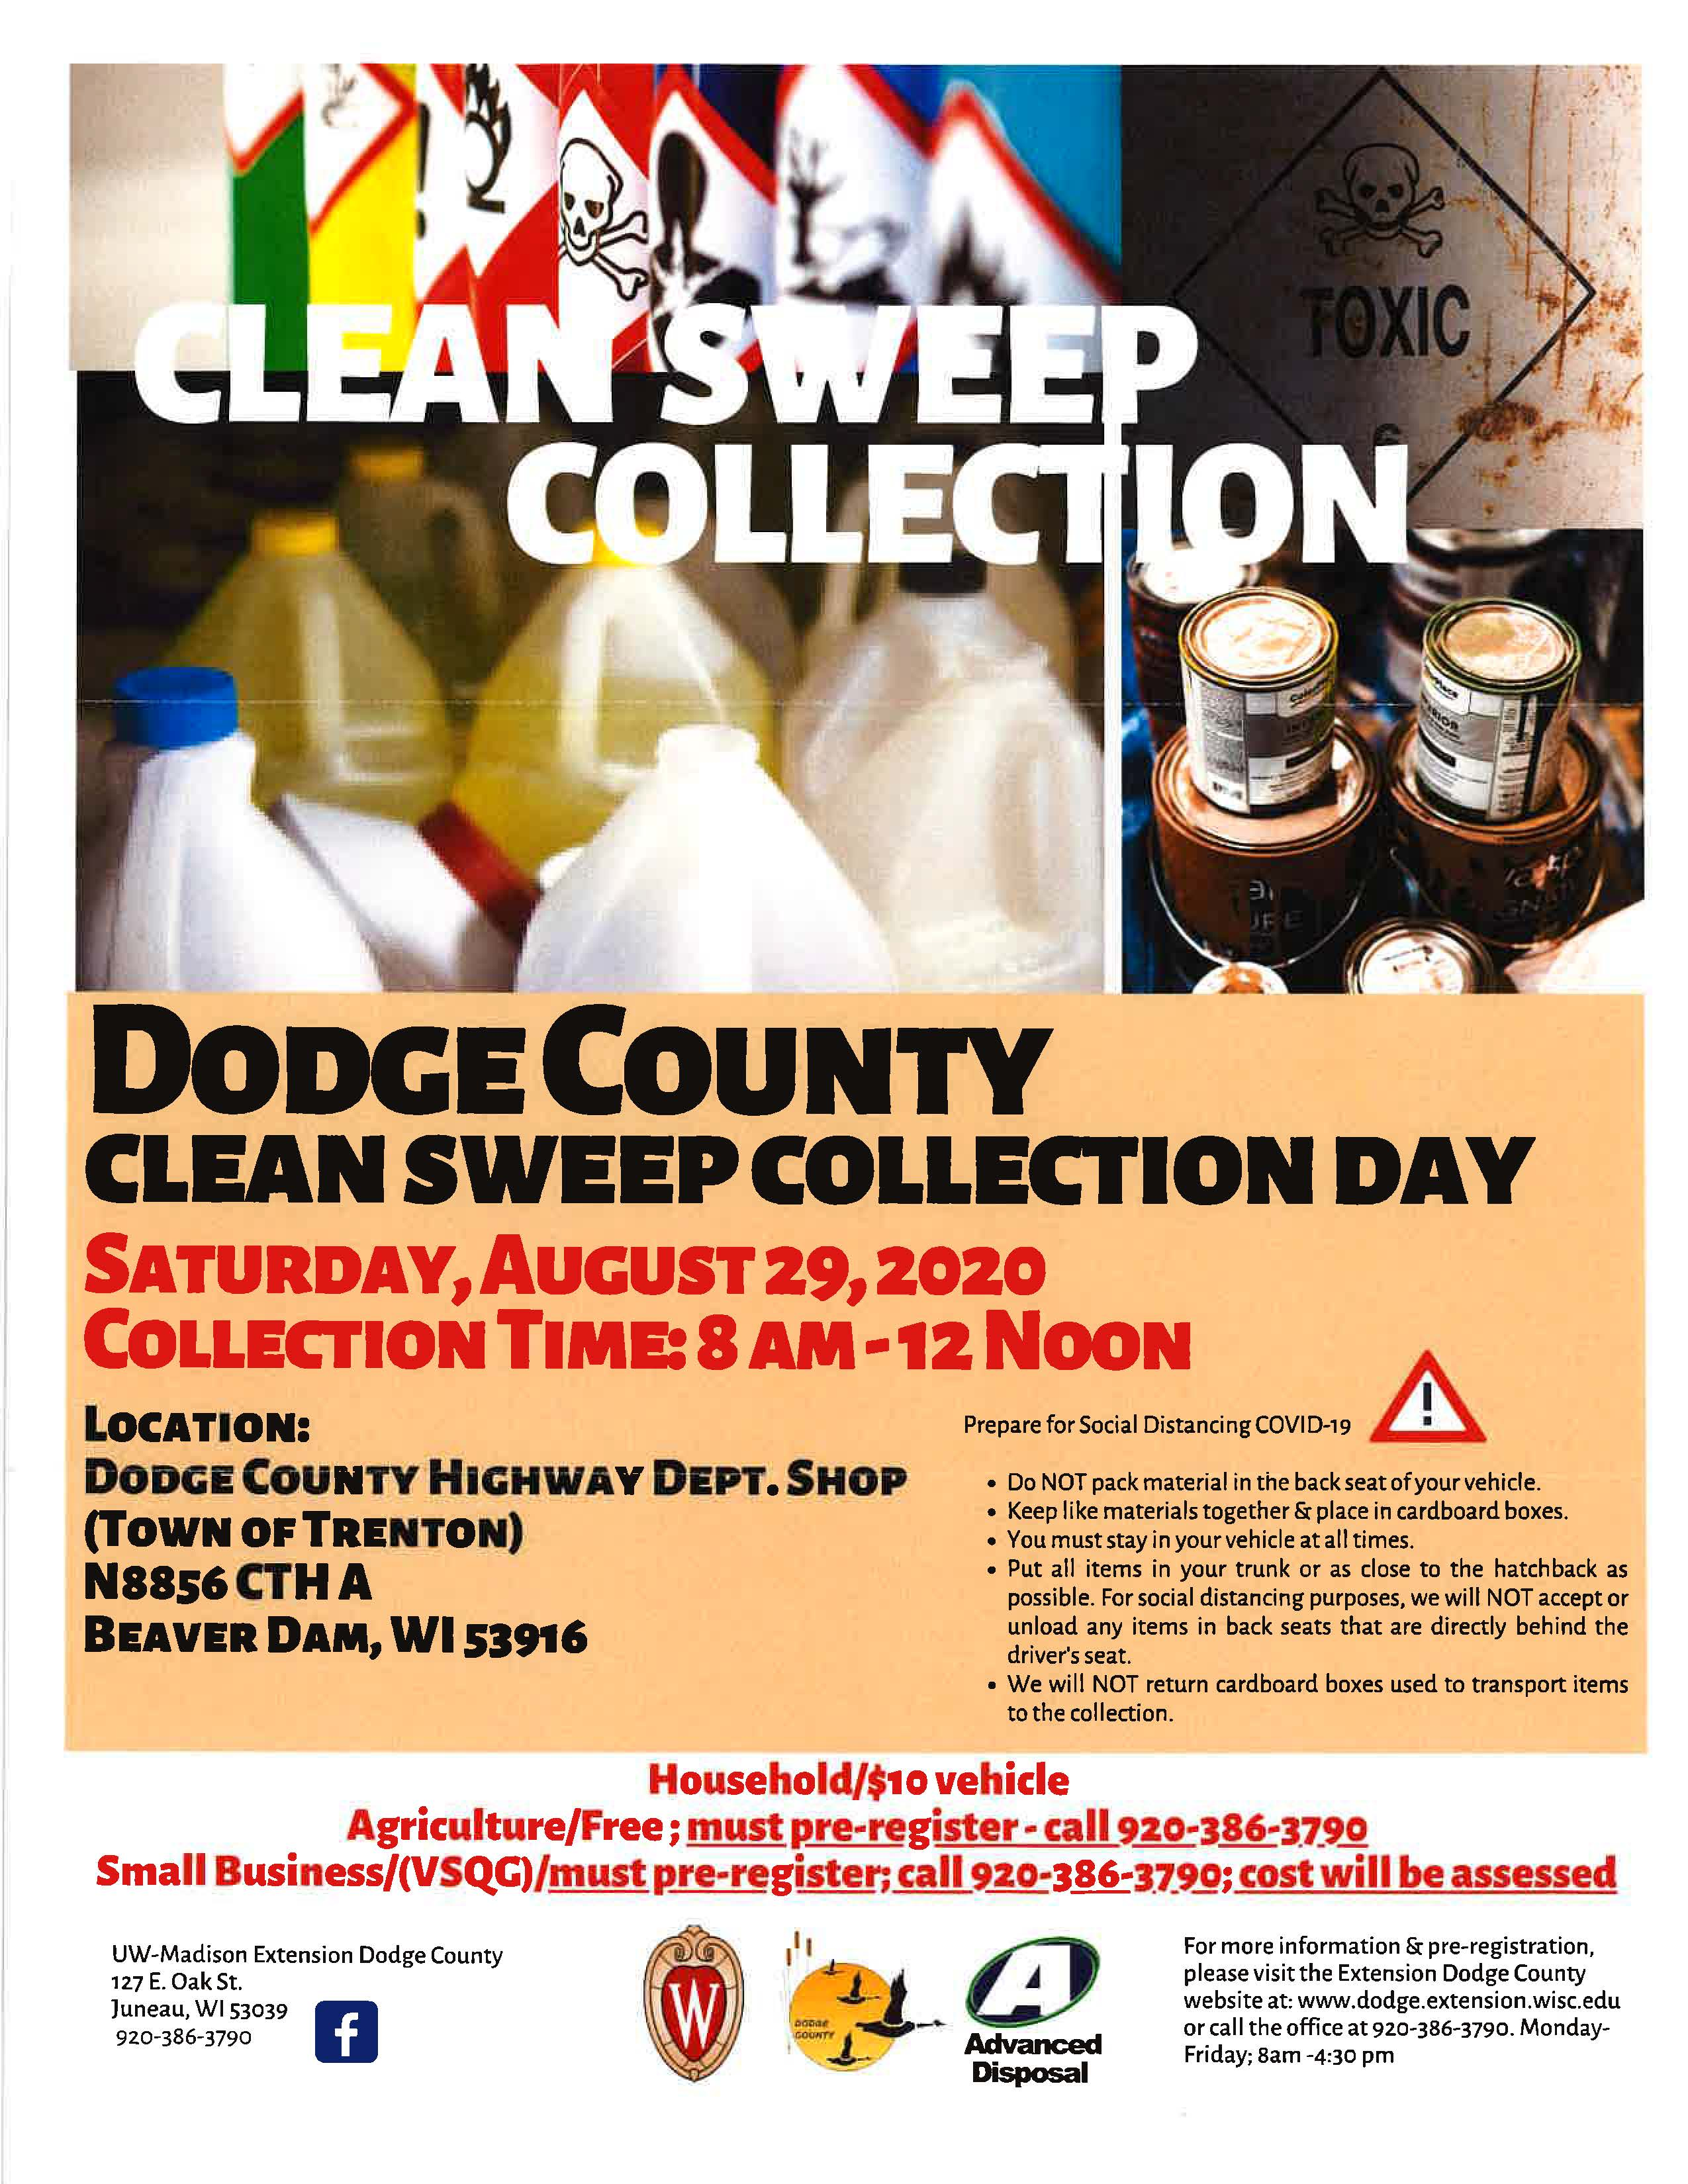 2020-08-29_Dodge County Clean Sweep Collection